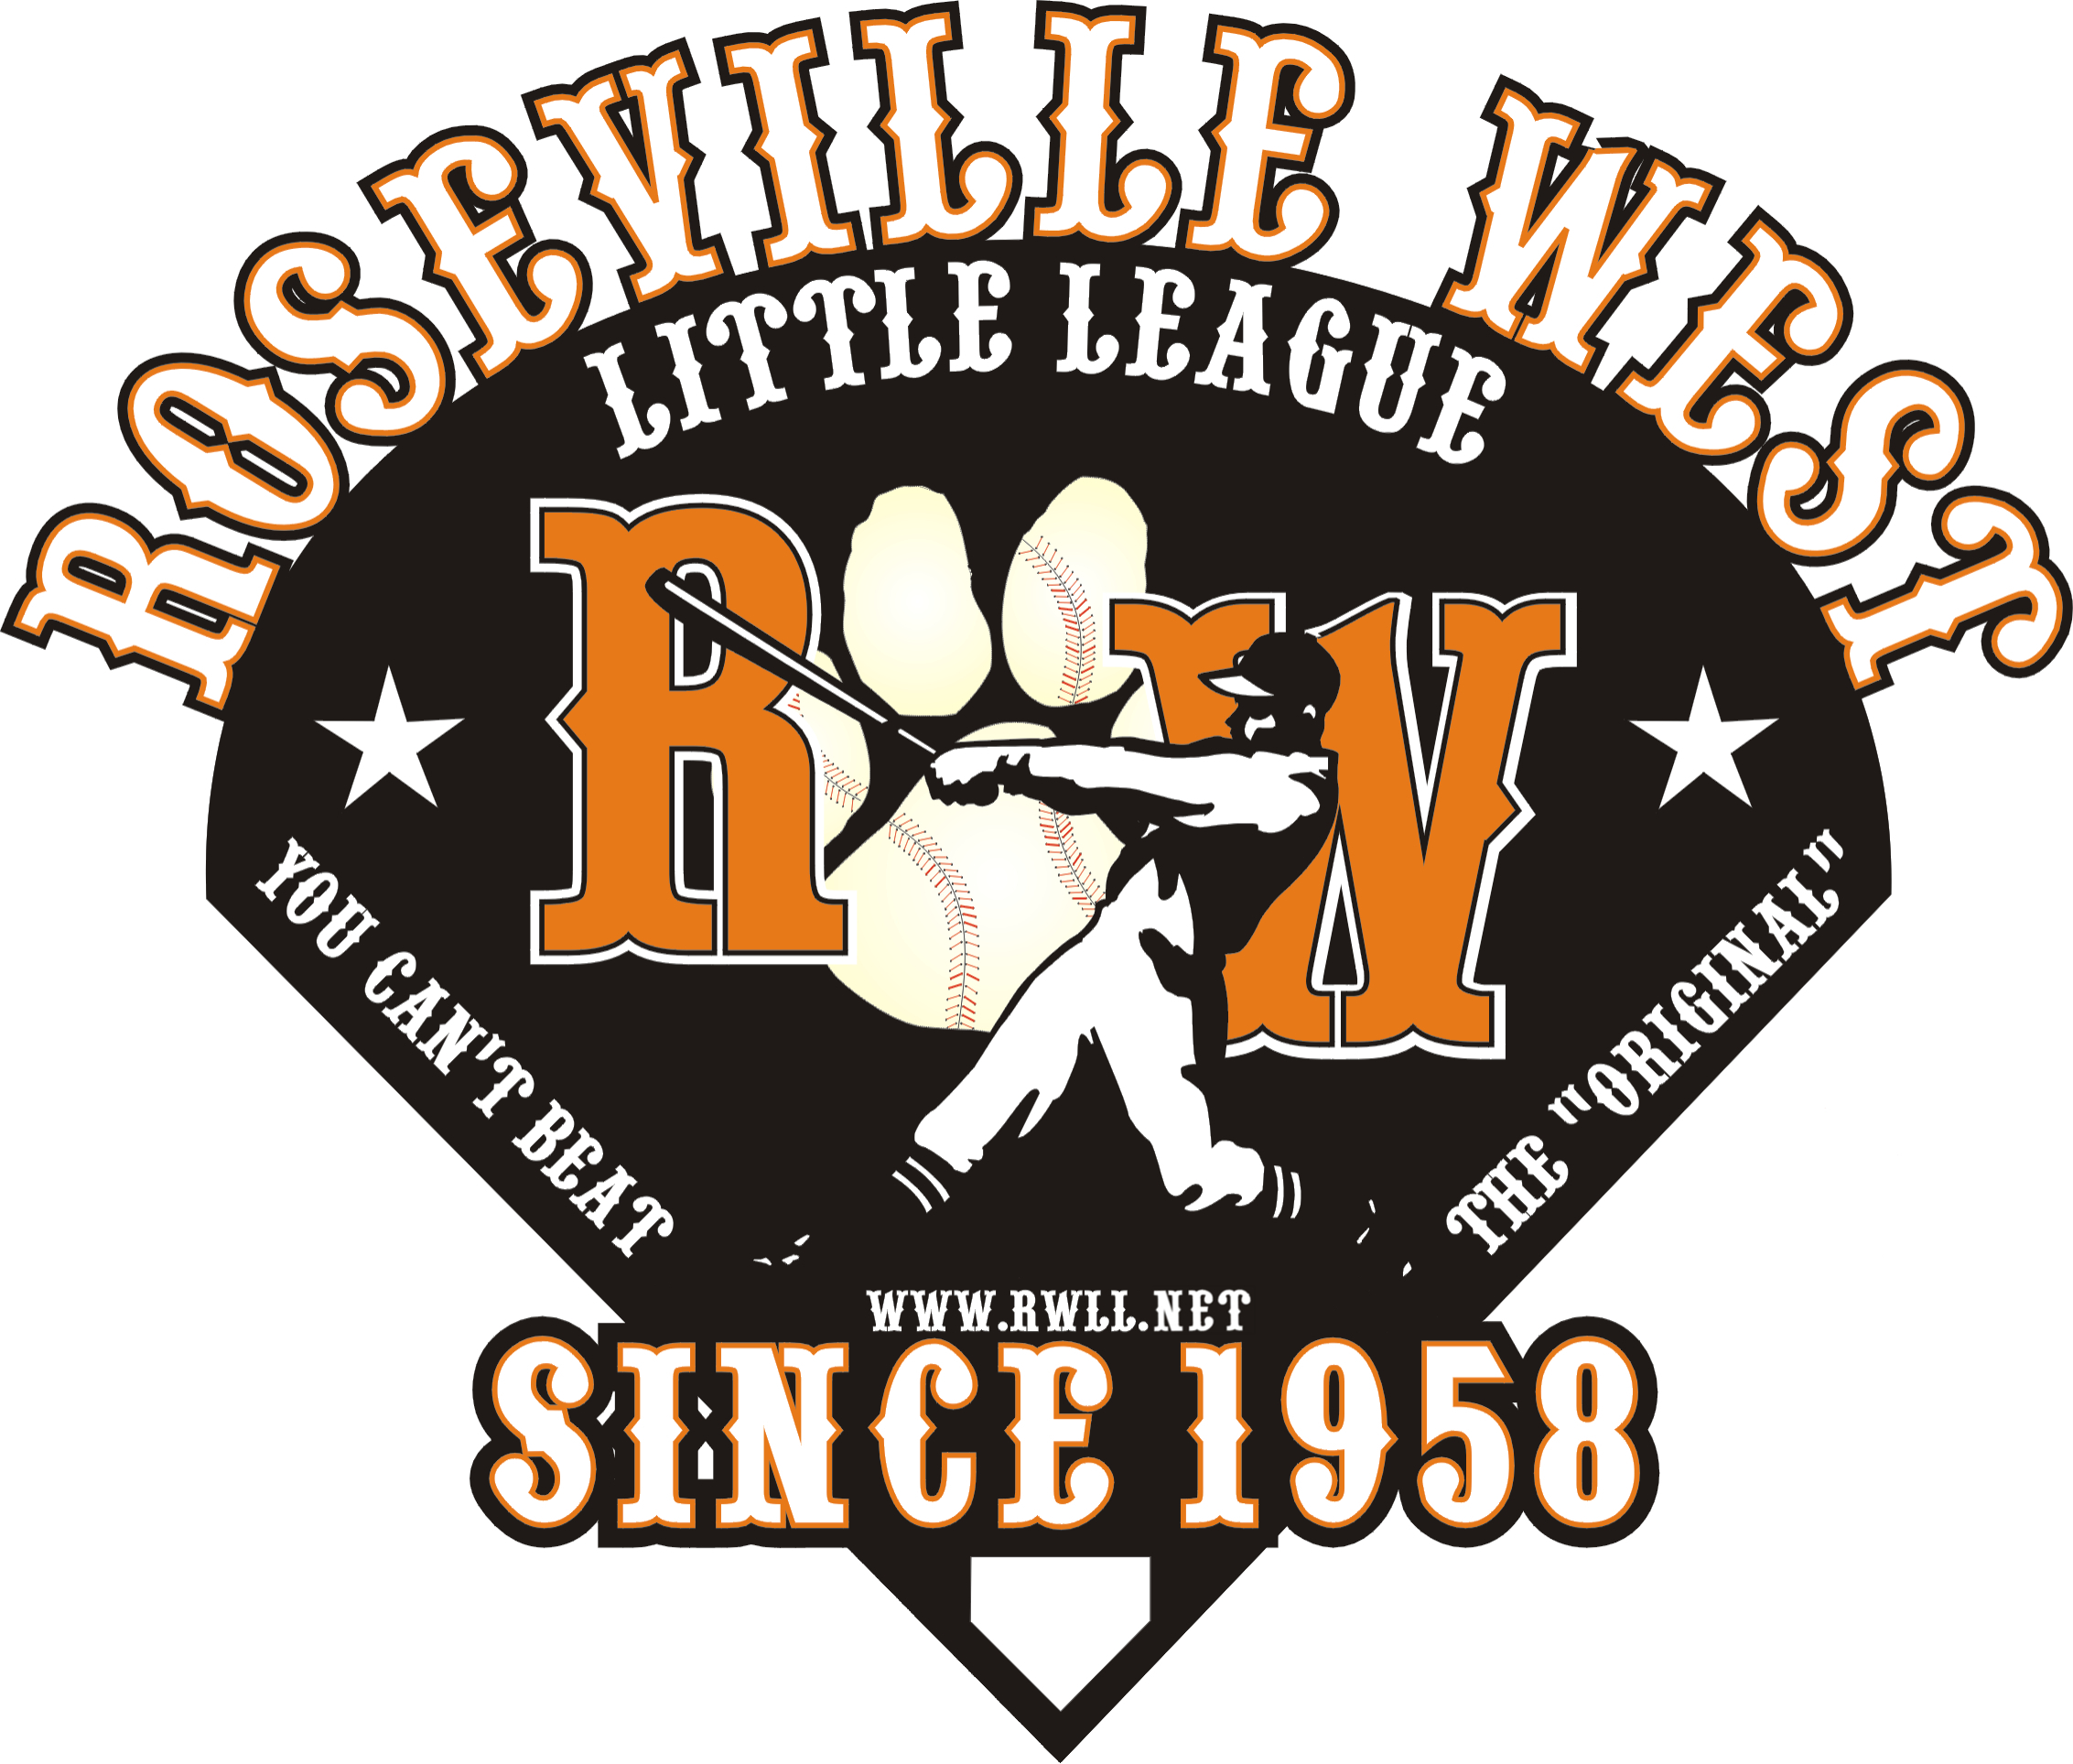 Welcome to Roseville West Little League